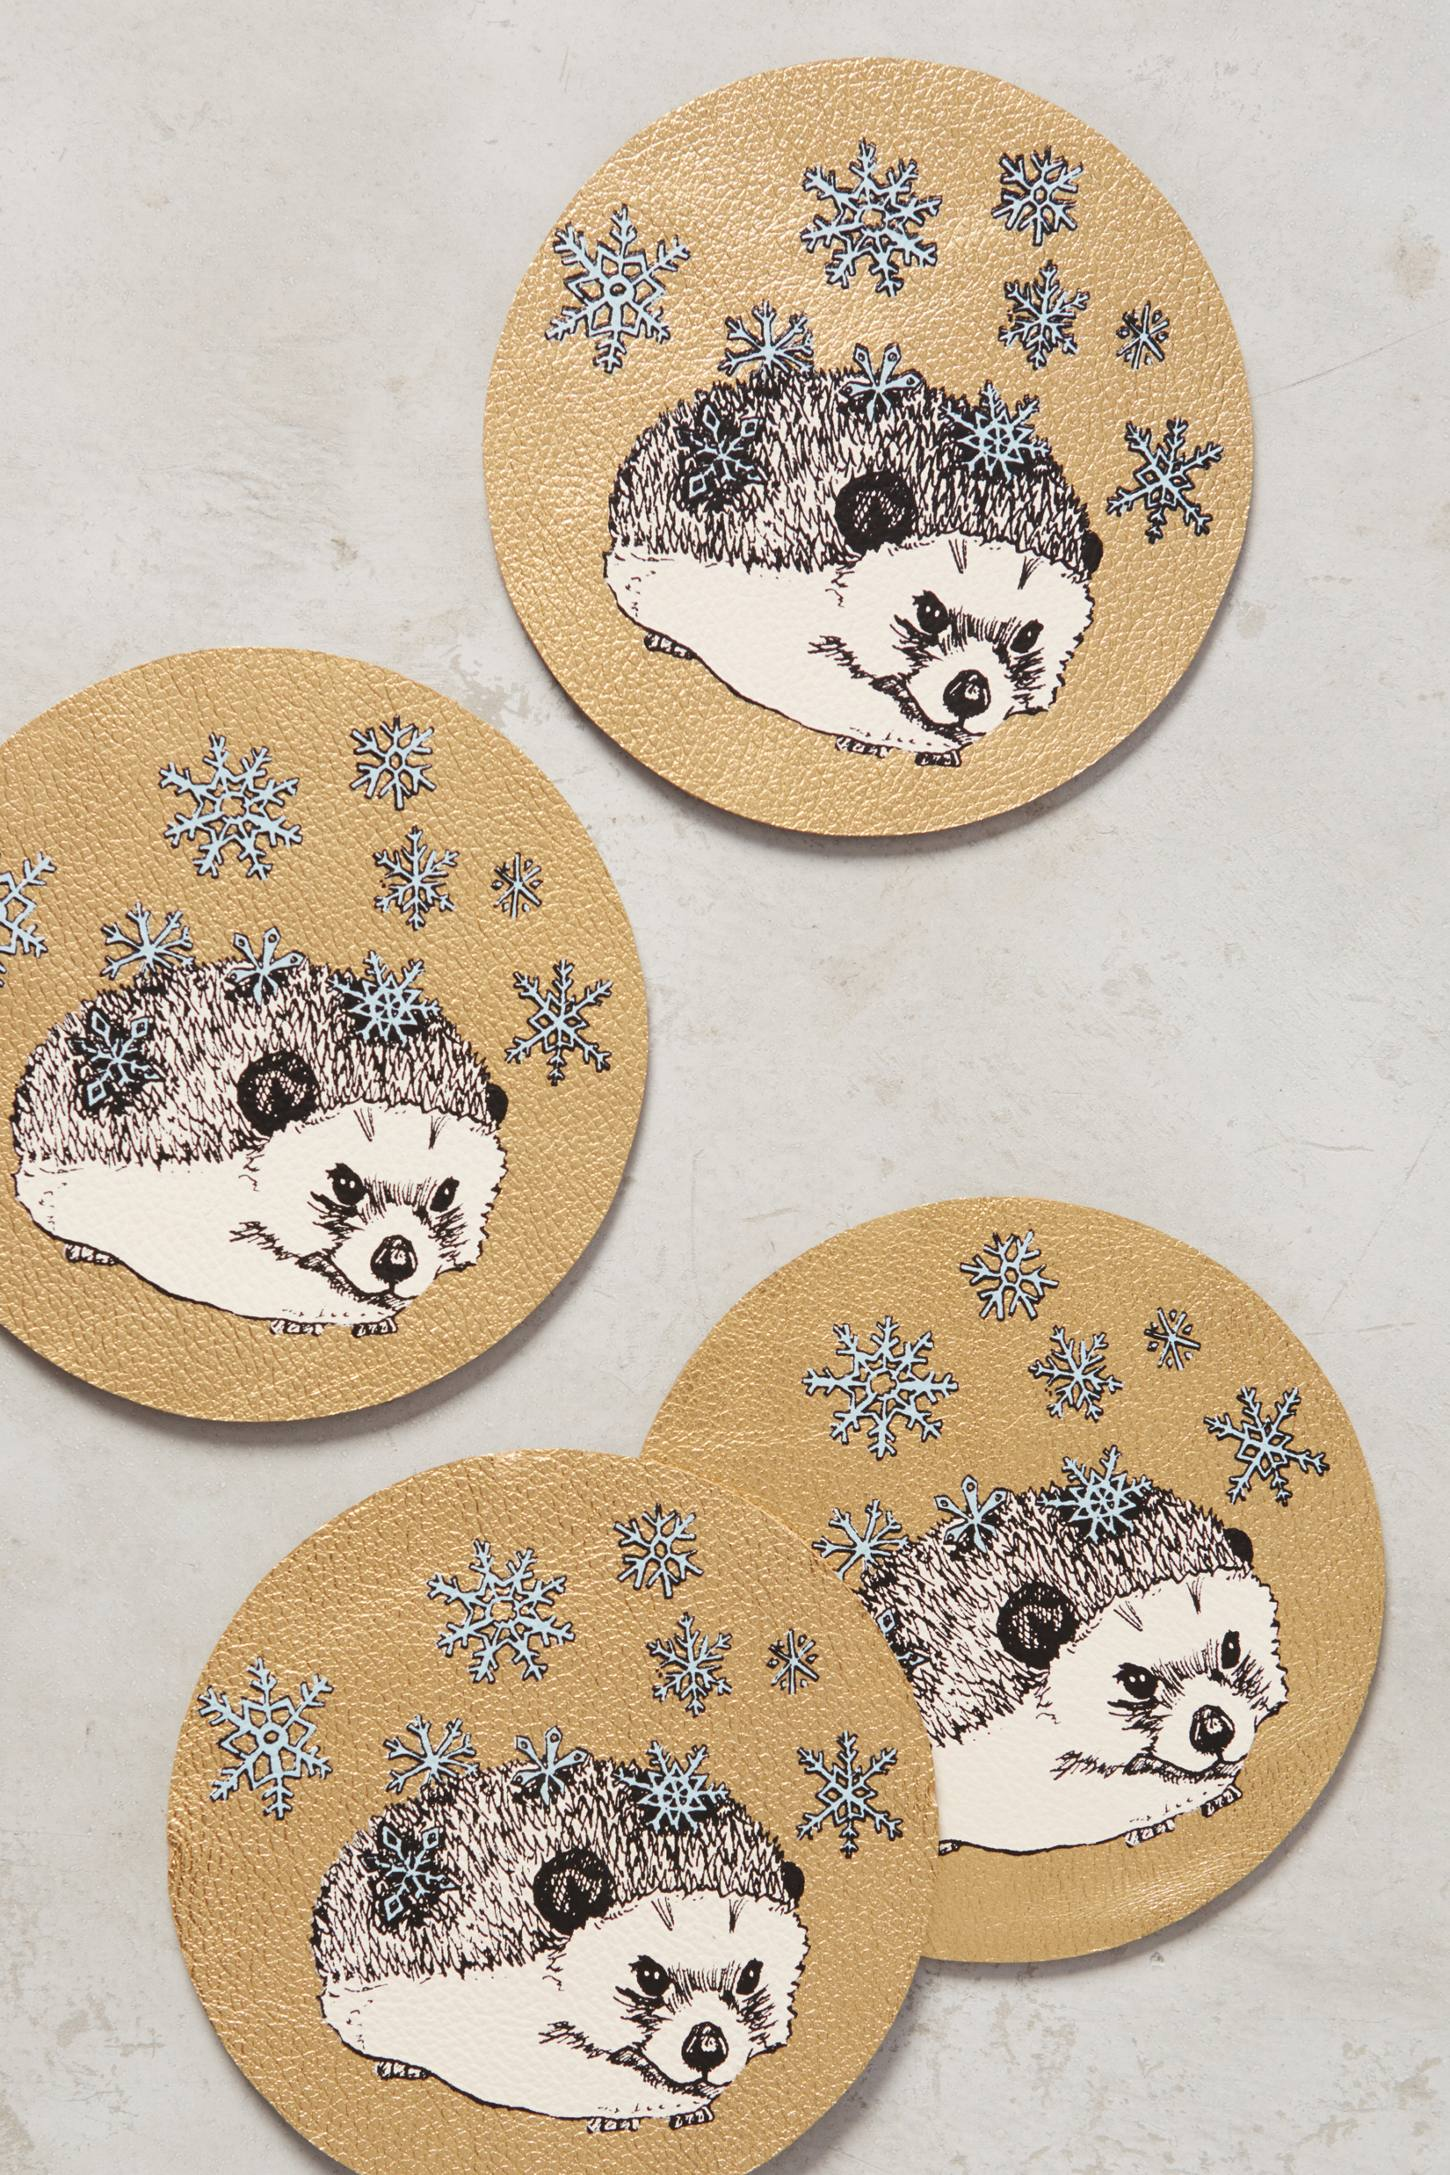 Forest Merriment Coasters